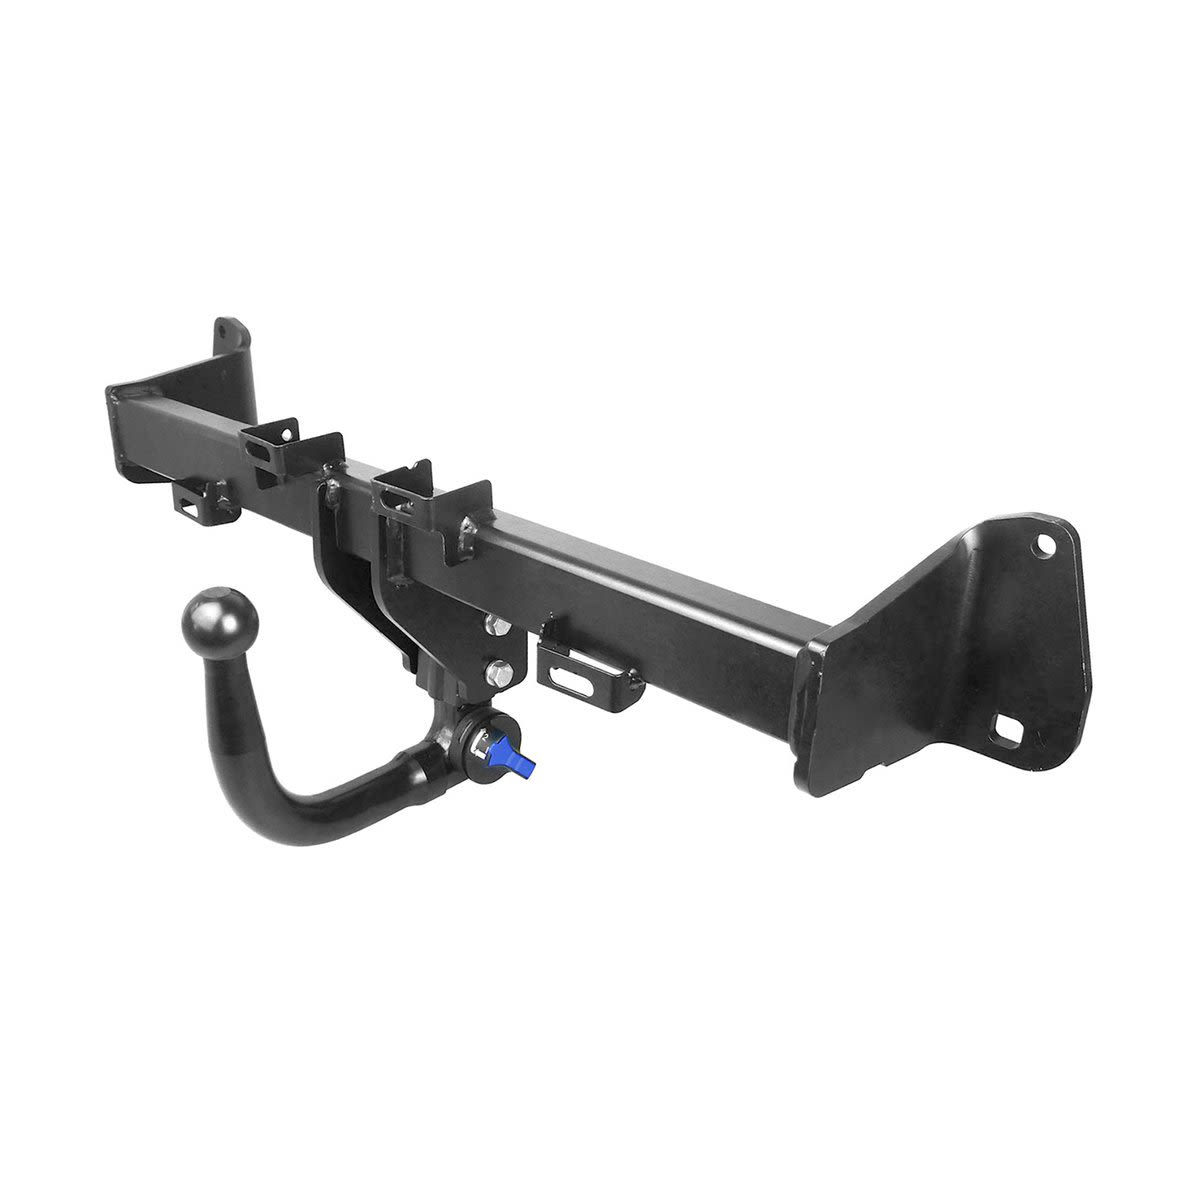 TAG Towbars European Style Tongue to suit Citroen C5 (02/2005 - 05/2006)